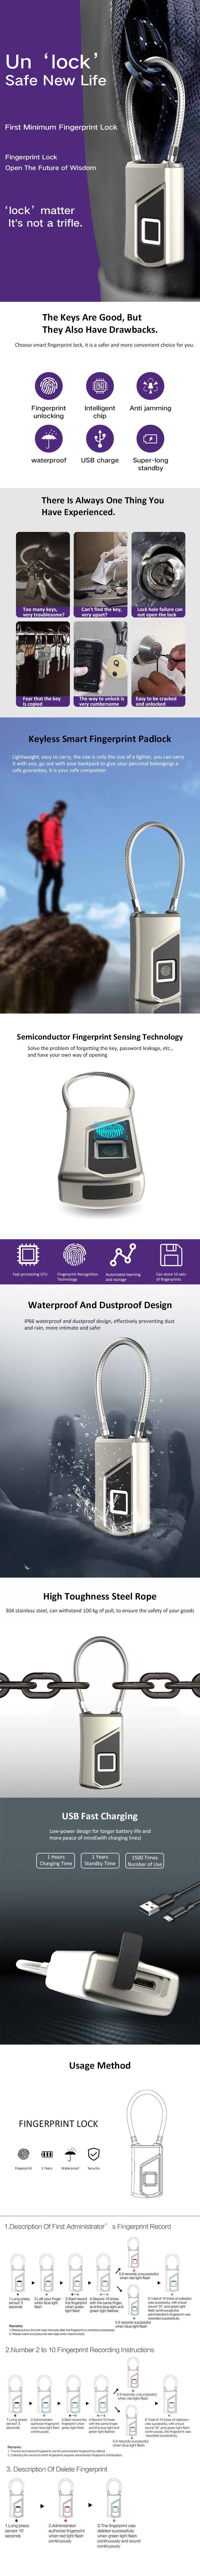 New Arrival Smart USB Charge fashion Lock  IP66 Waterproof Fingerprint padlock